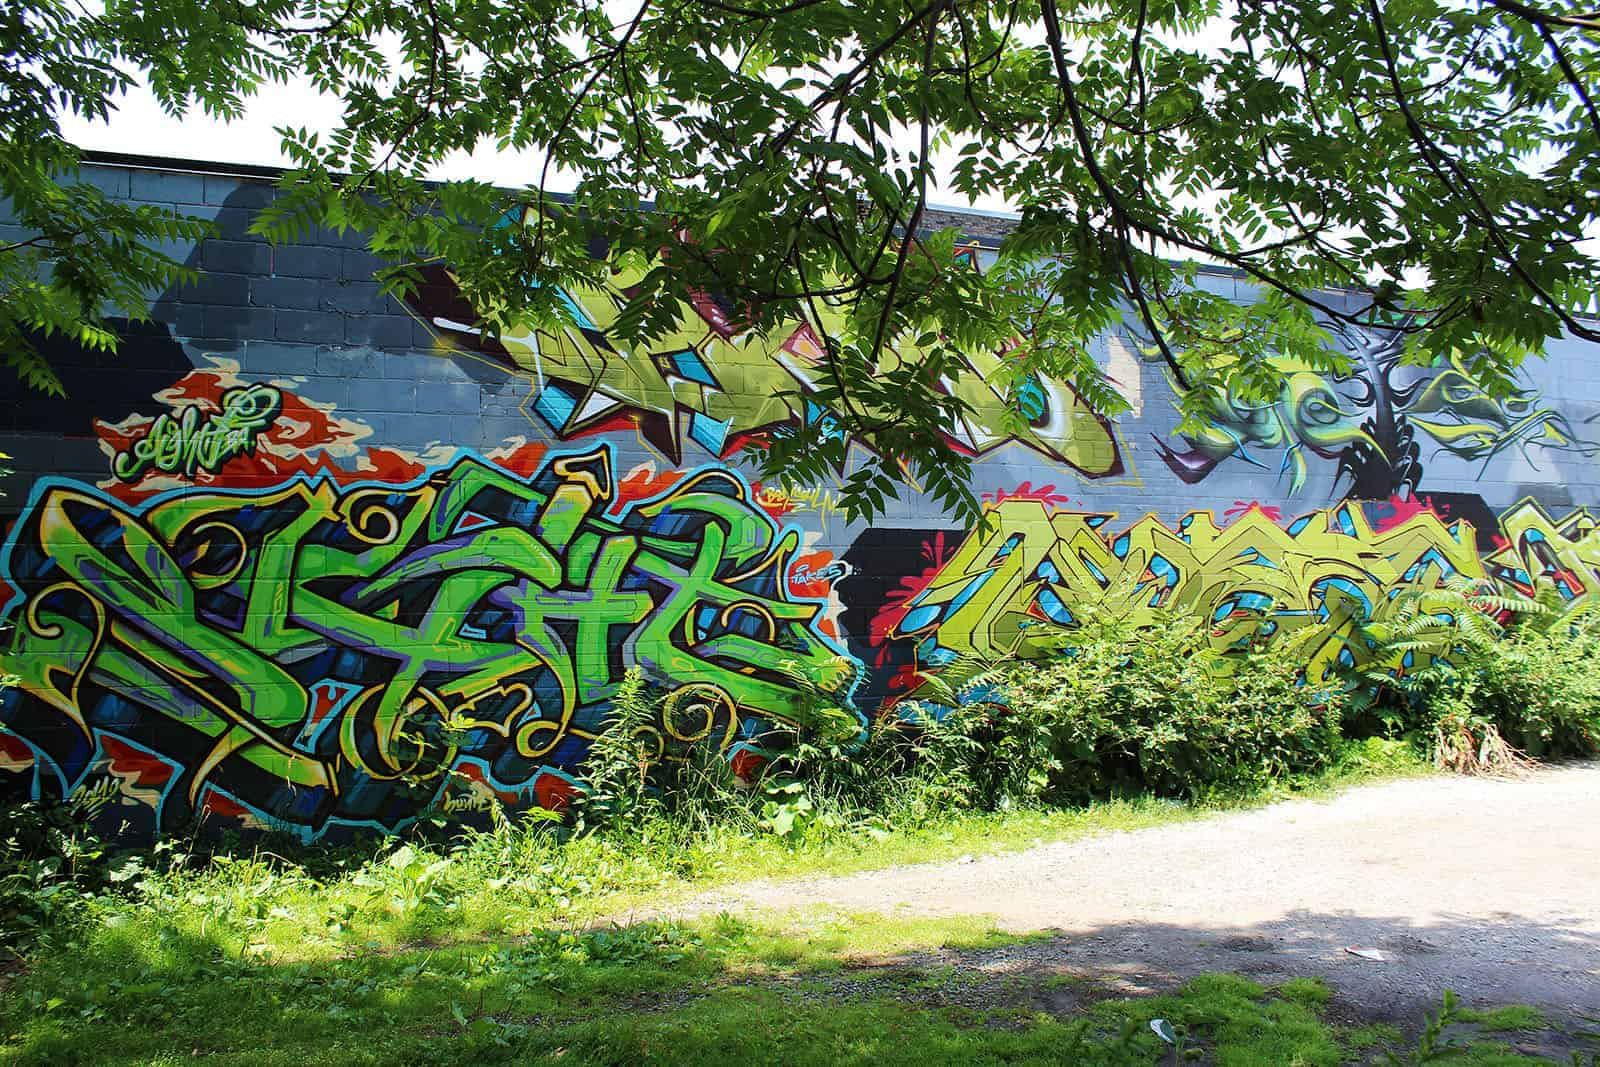 Graffiti Tour in Toronto - Street Art